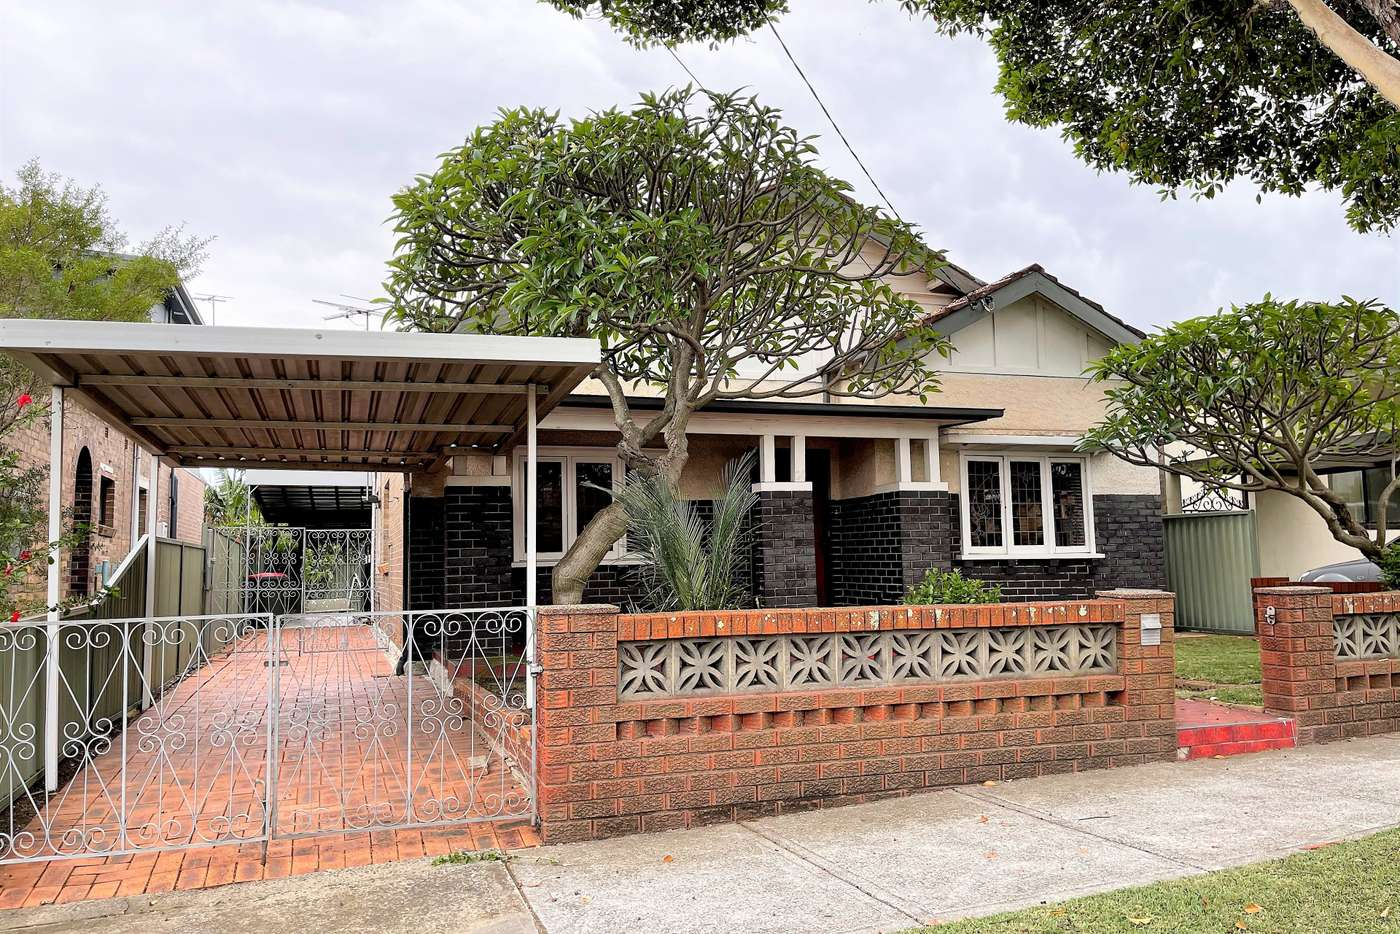 Main view of Homely house listing, 24 Princes Street, Bexley NSW 2207